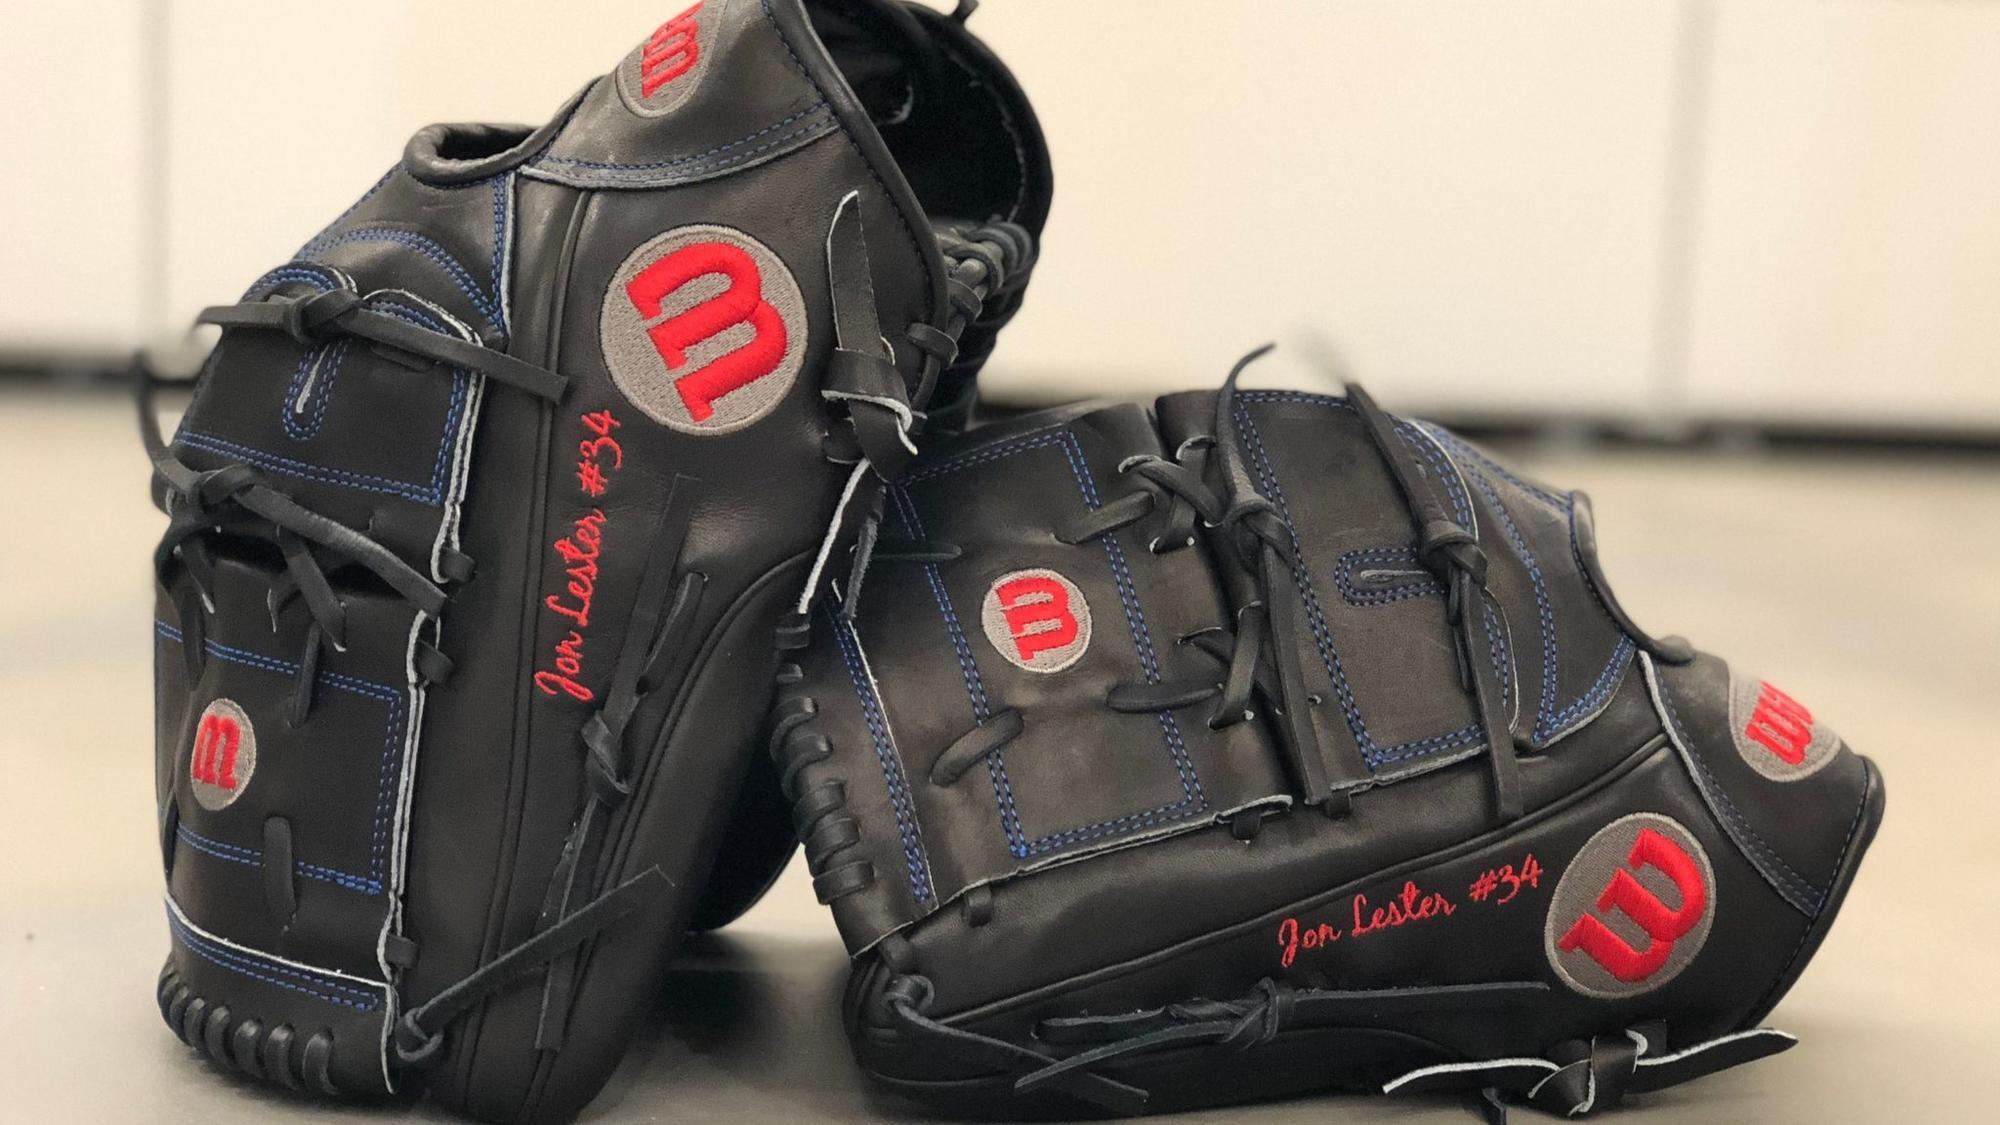 Jon Lester To Receive Special Game Model Glove From